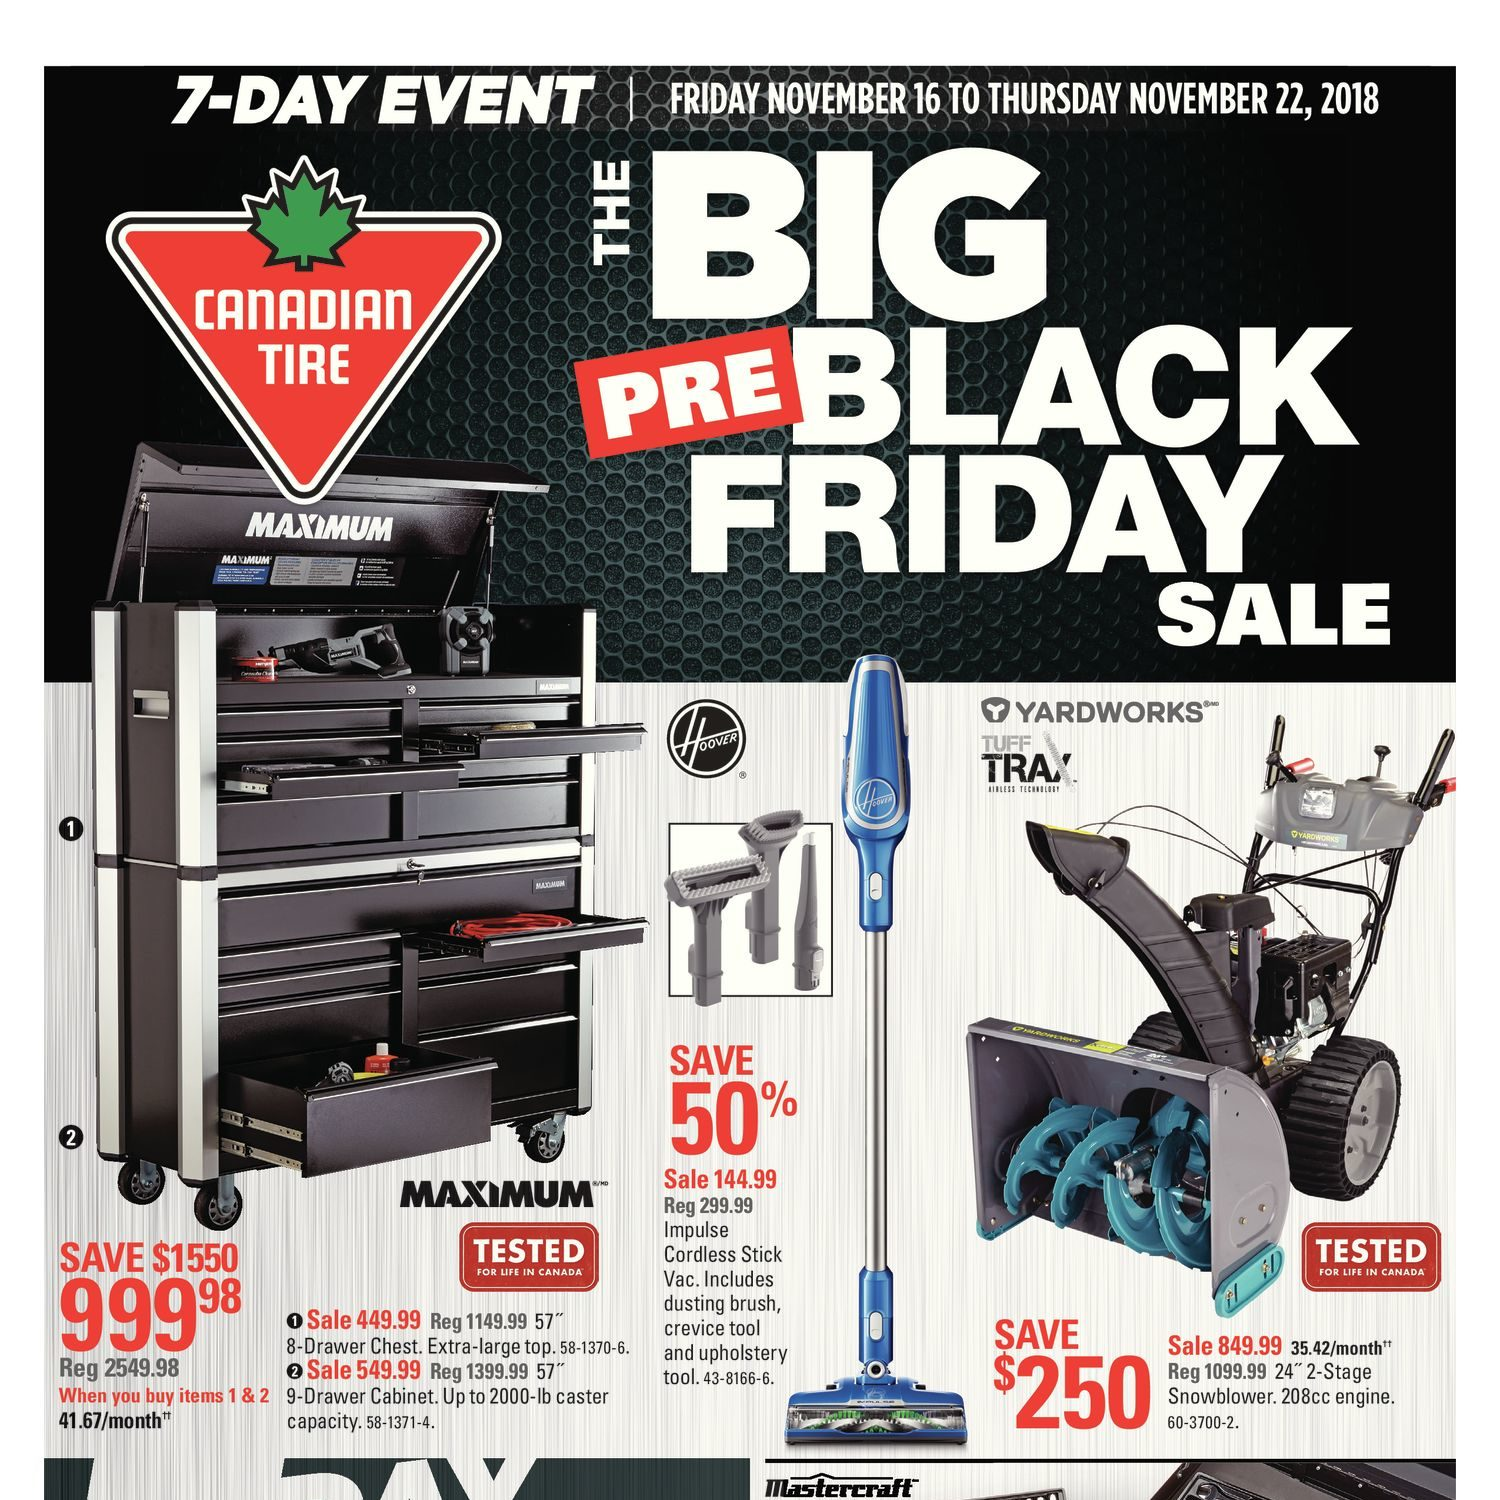 Canadian Tire Weekly Flyer 7 Day Event The Big Pre Black Friday Sale Nov 16 22 Redflagdeals Com